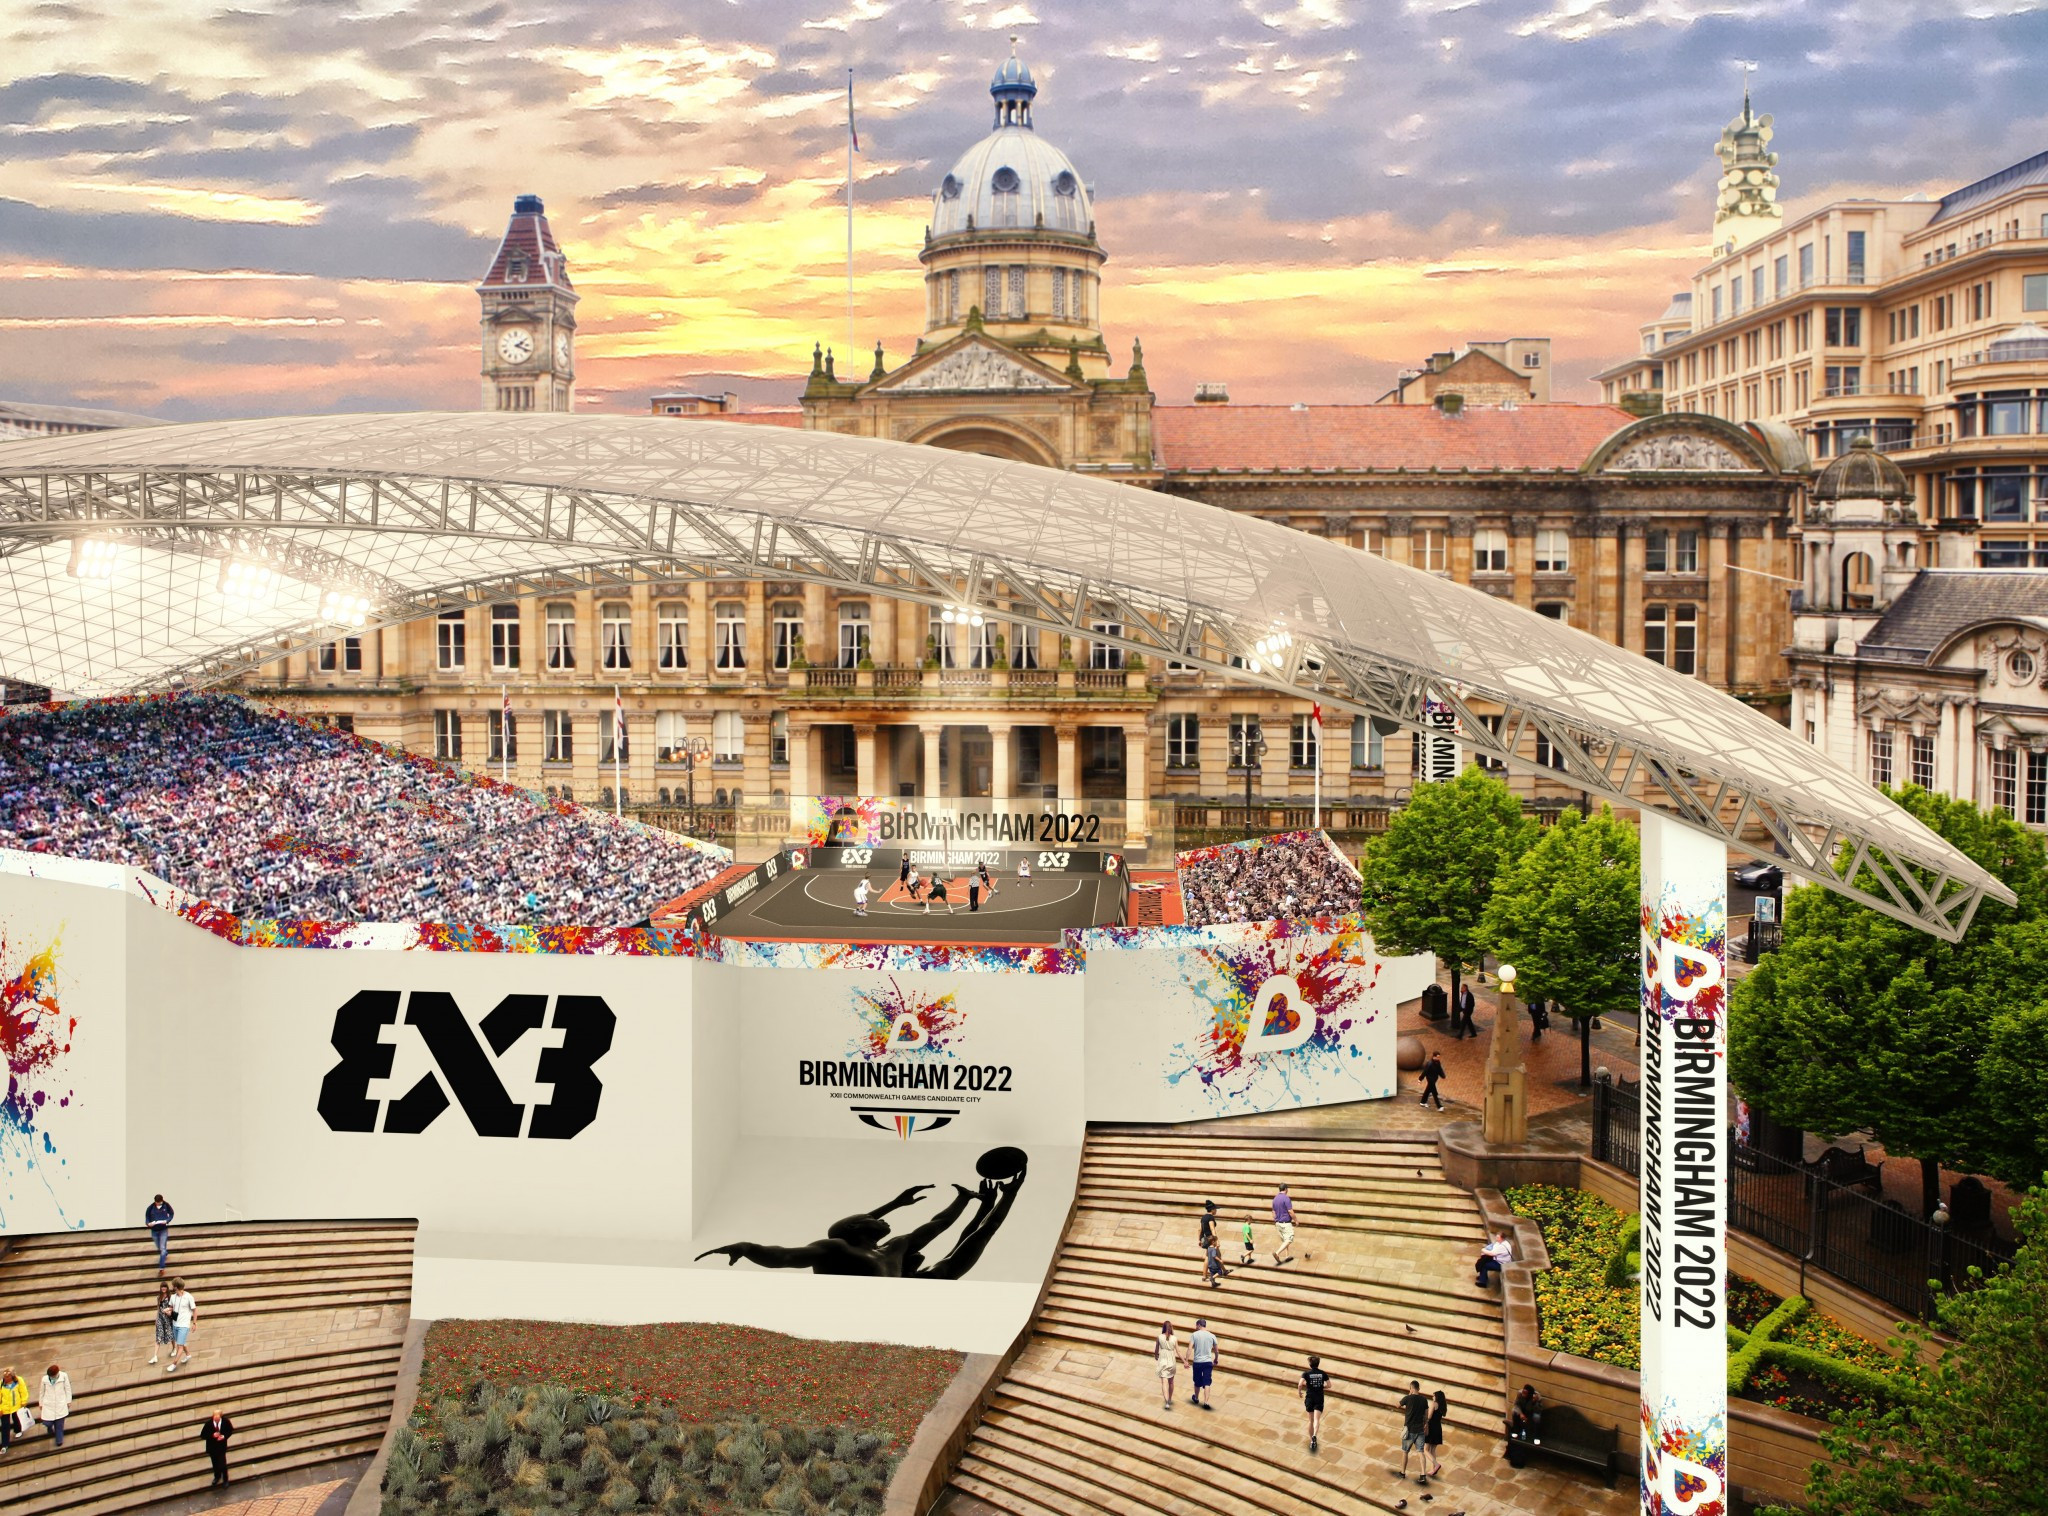 Birmingham will have to wait a few more weeks before it is officially awarded the 2022 Commonwealth Games ©Birmingham 2022